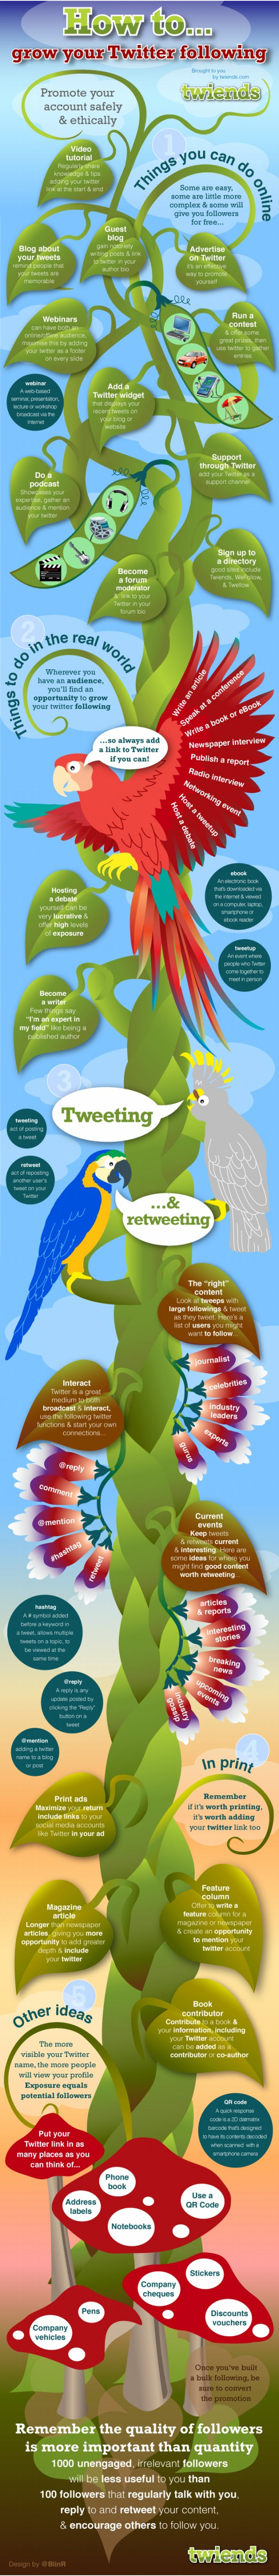 How to Increase your Twitter Followers